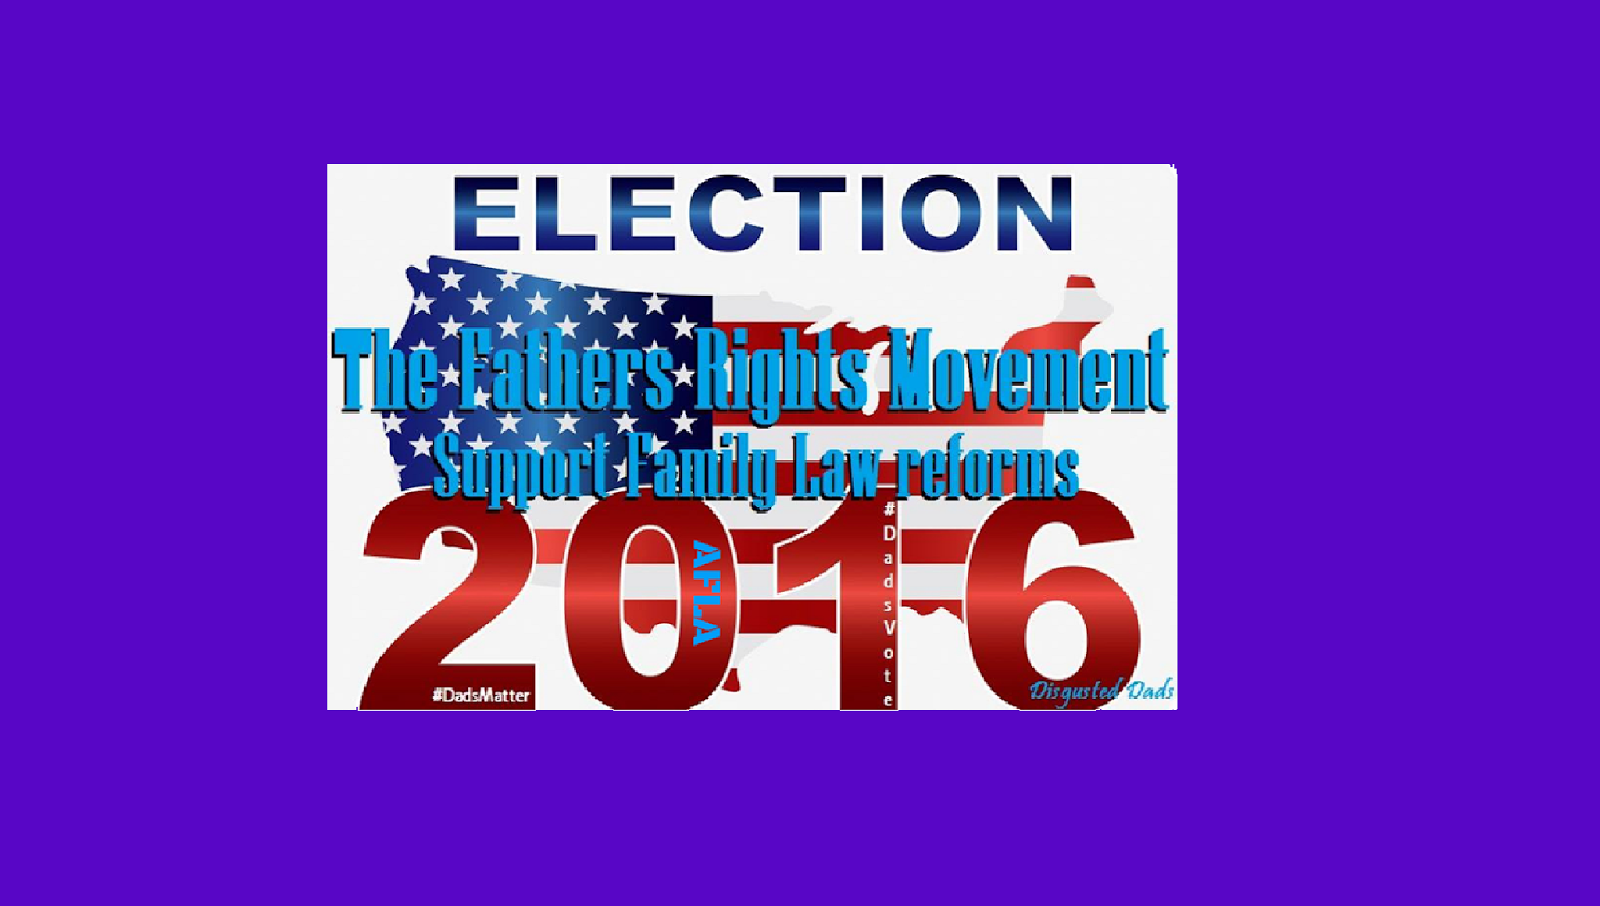 Make Family Law Reform an Election 2016 Topic